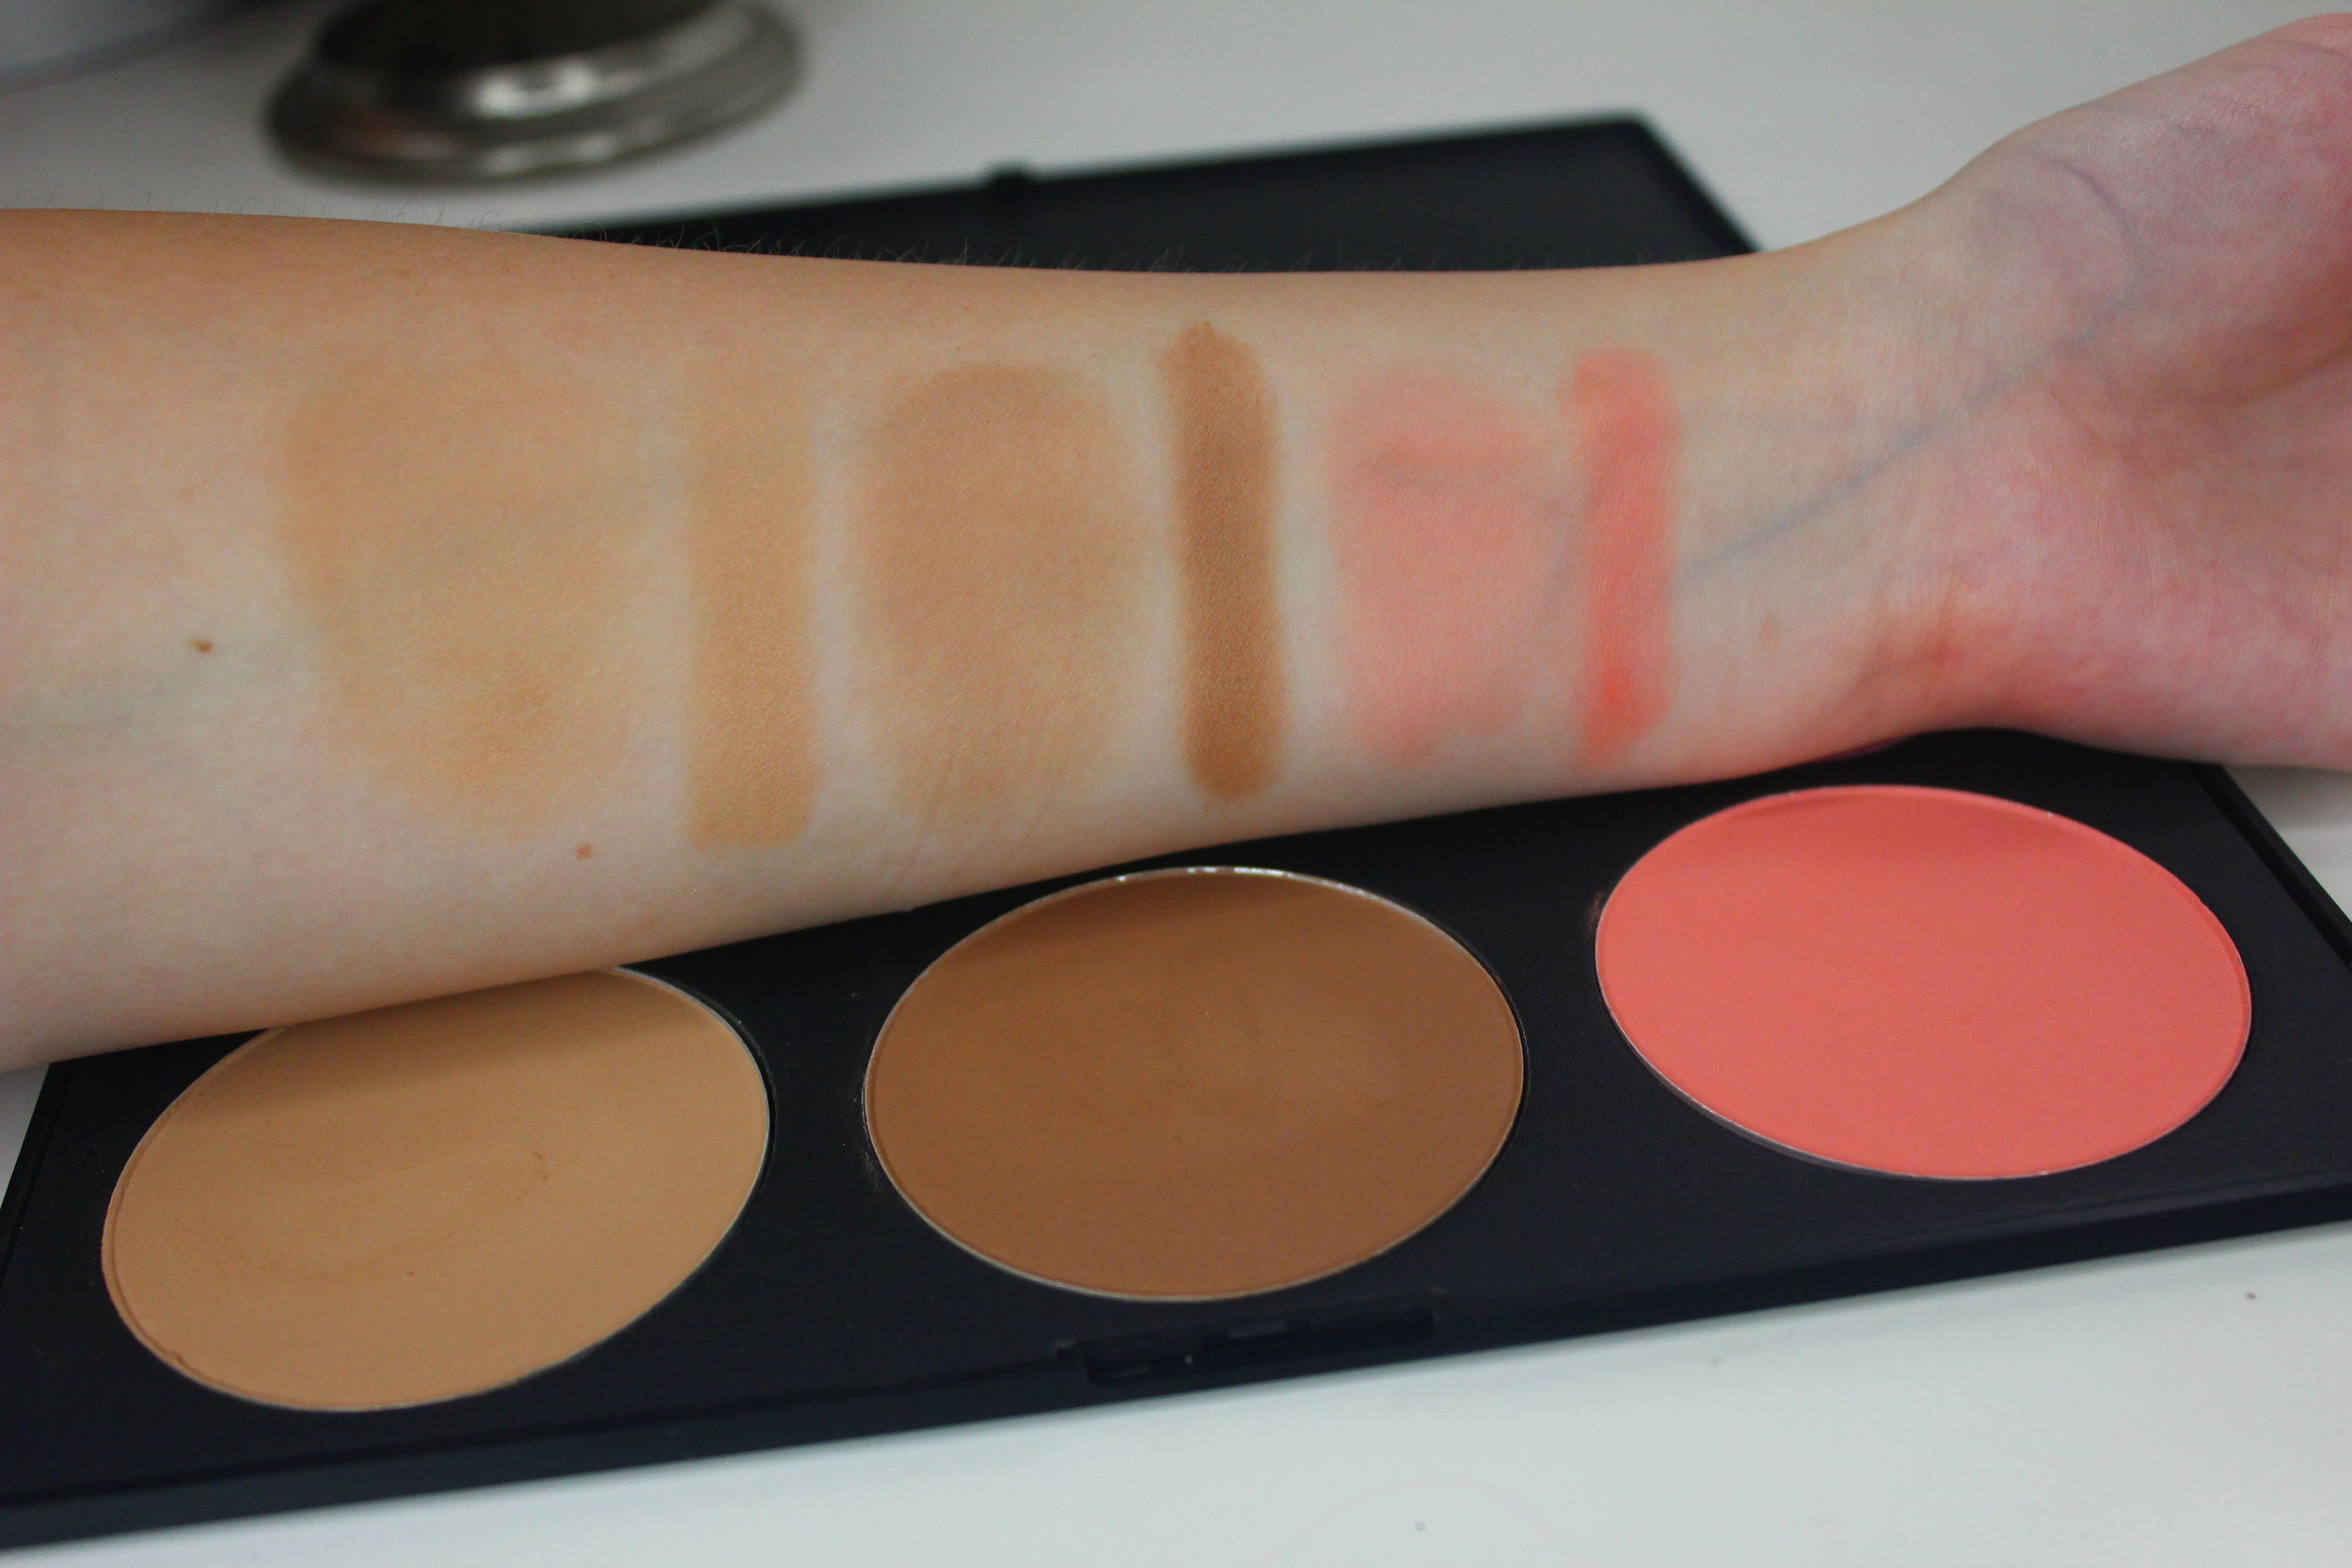 Sedona Lace Contour and Blush Palette swatches 1 contour and blush